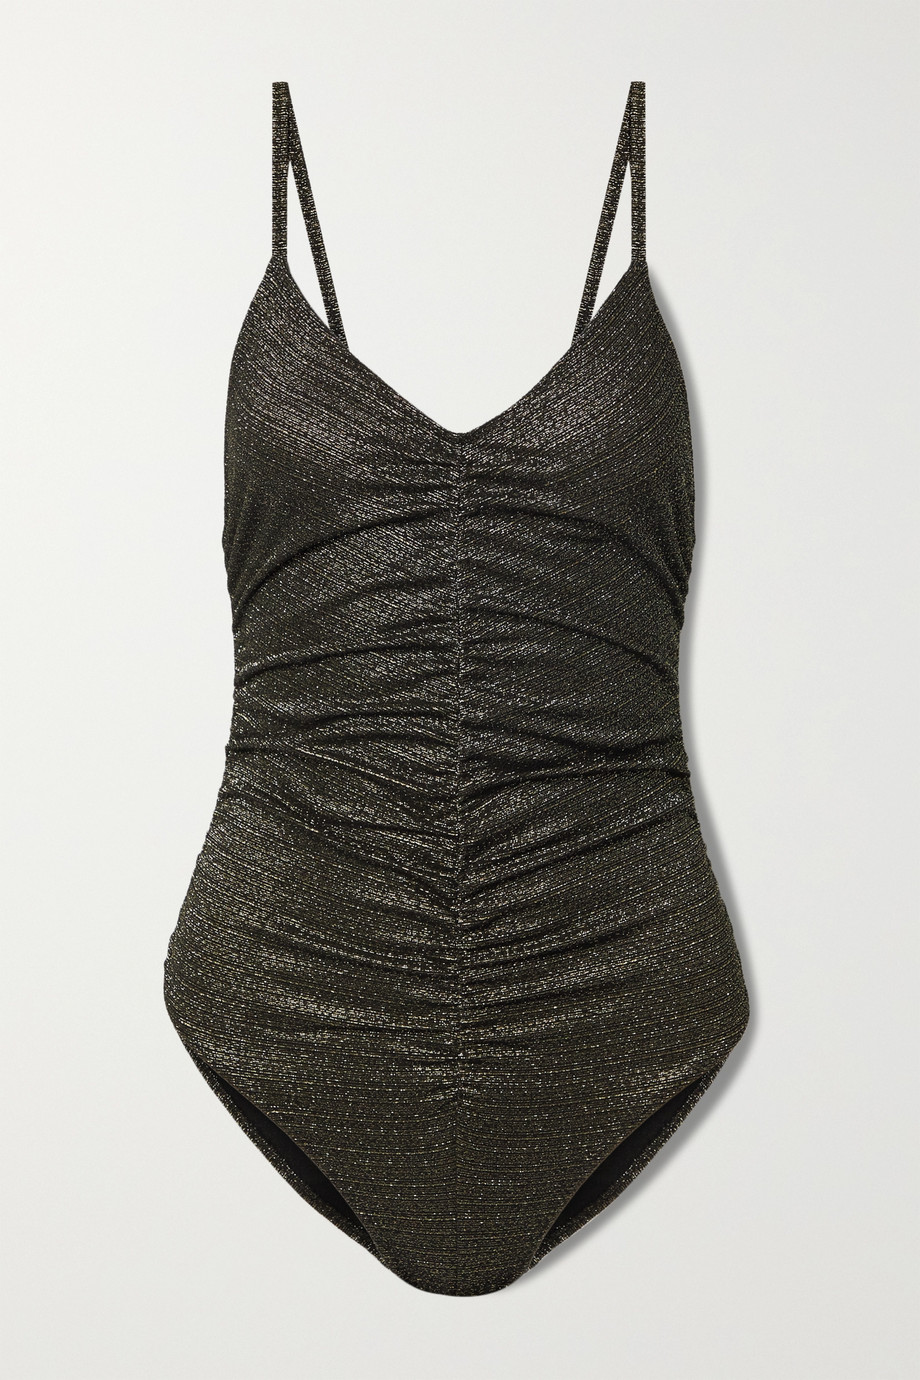 Lisa Marie Fernandez + NET SUSTAIN ruched metallic swimsuit